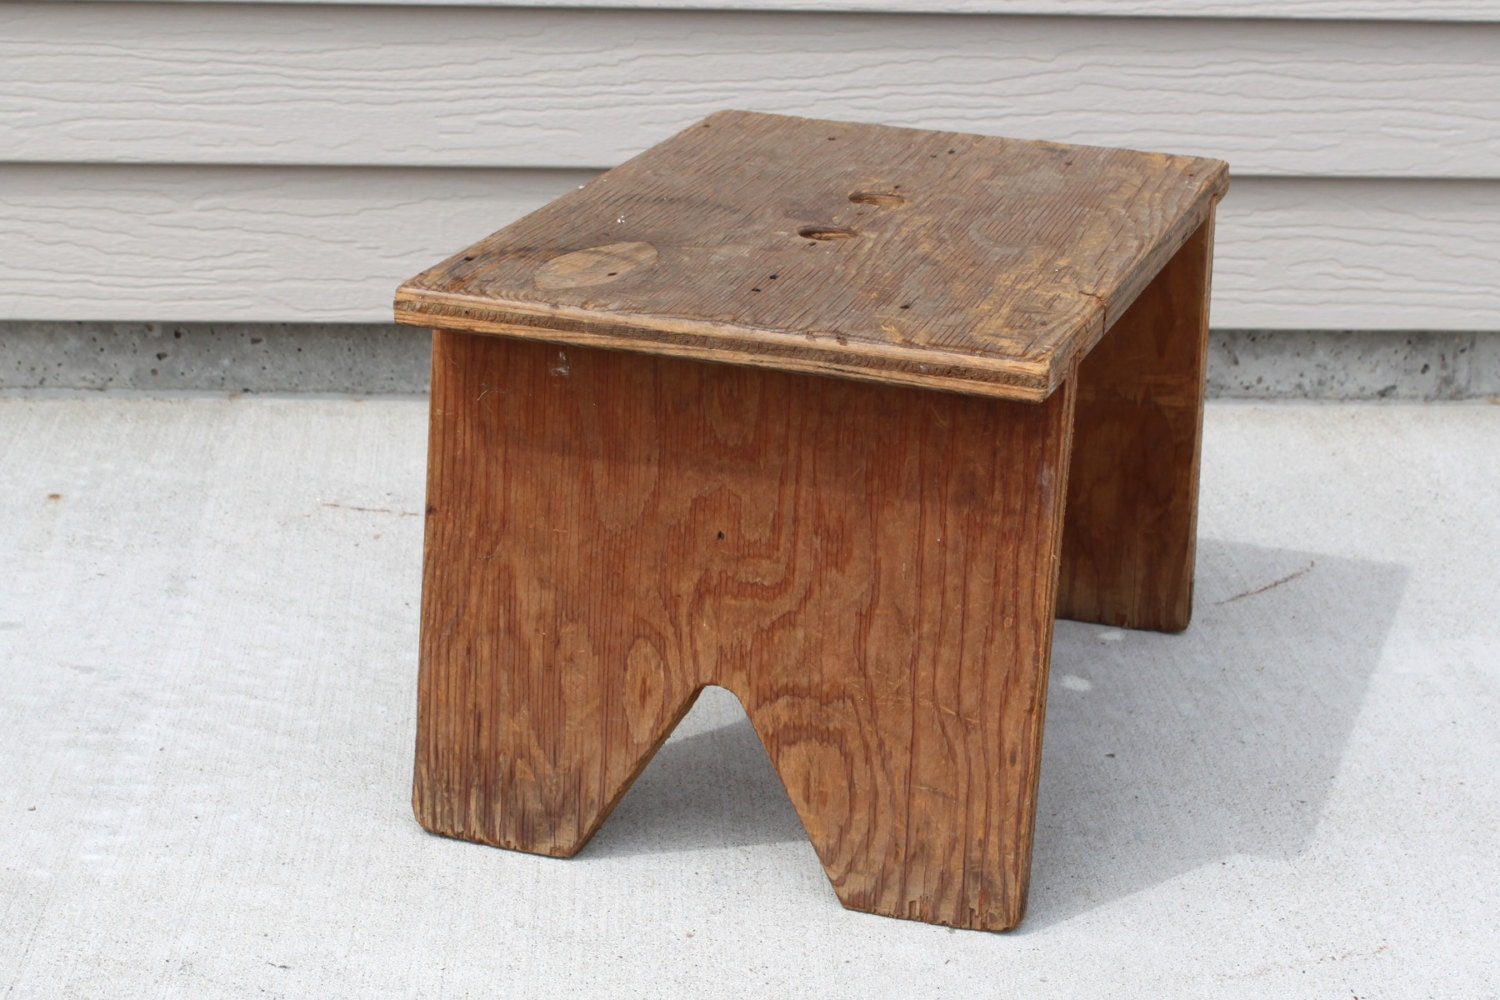 Vintage Wood Step Stool Wood Bench Holes For By Itsstilllife